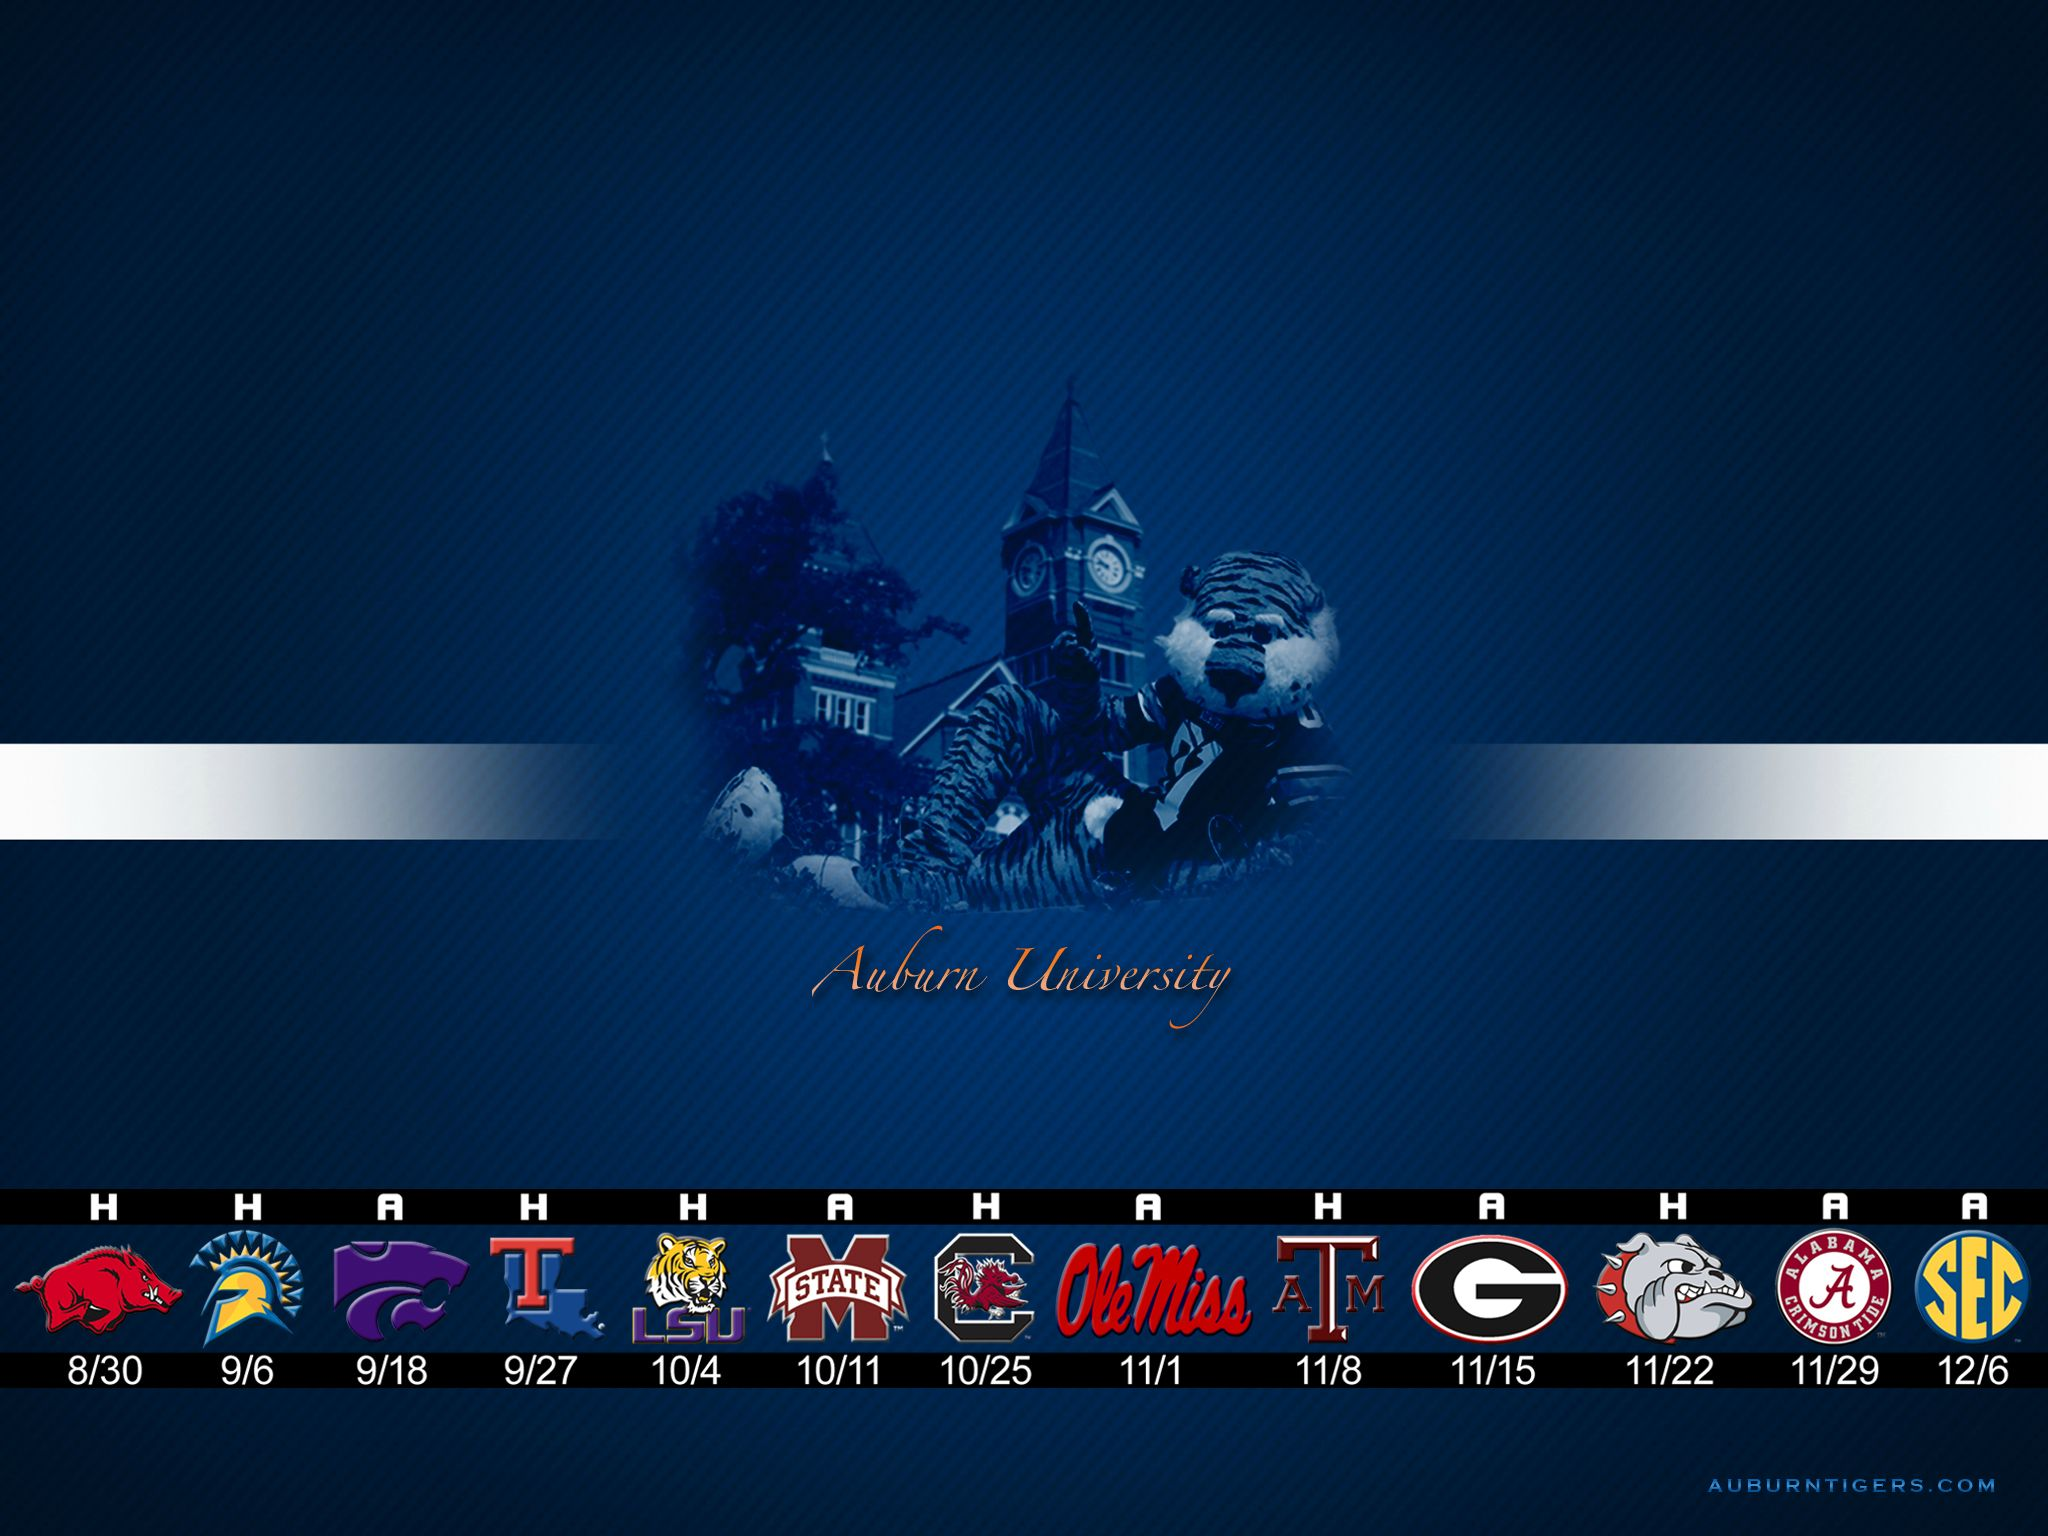 AUBURN WALLPAPERS FREE Wallpapers Background images 2048x1536